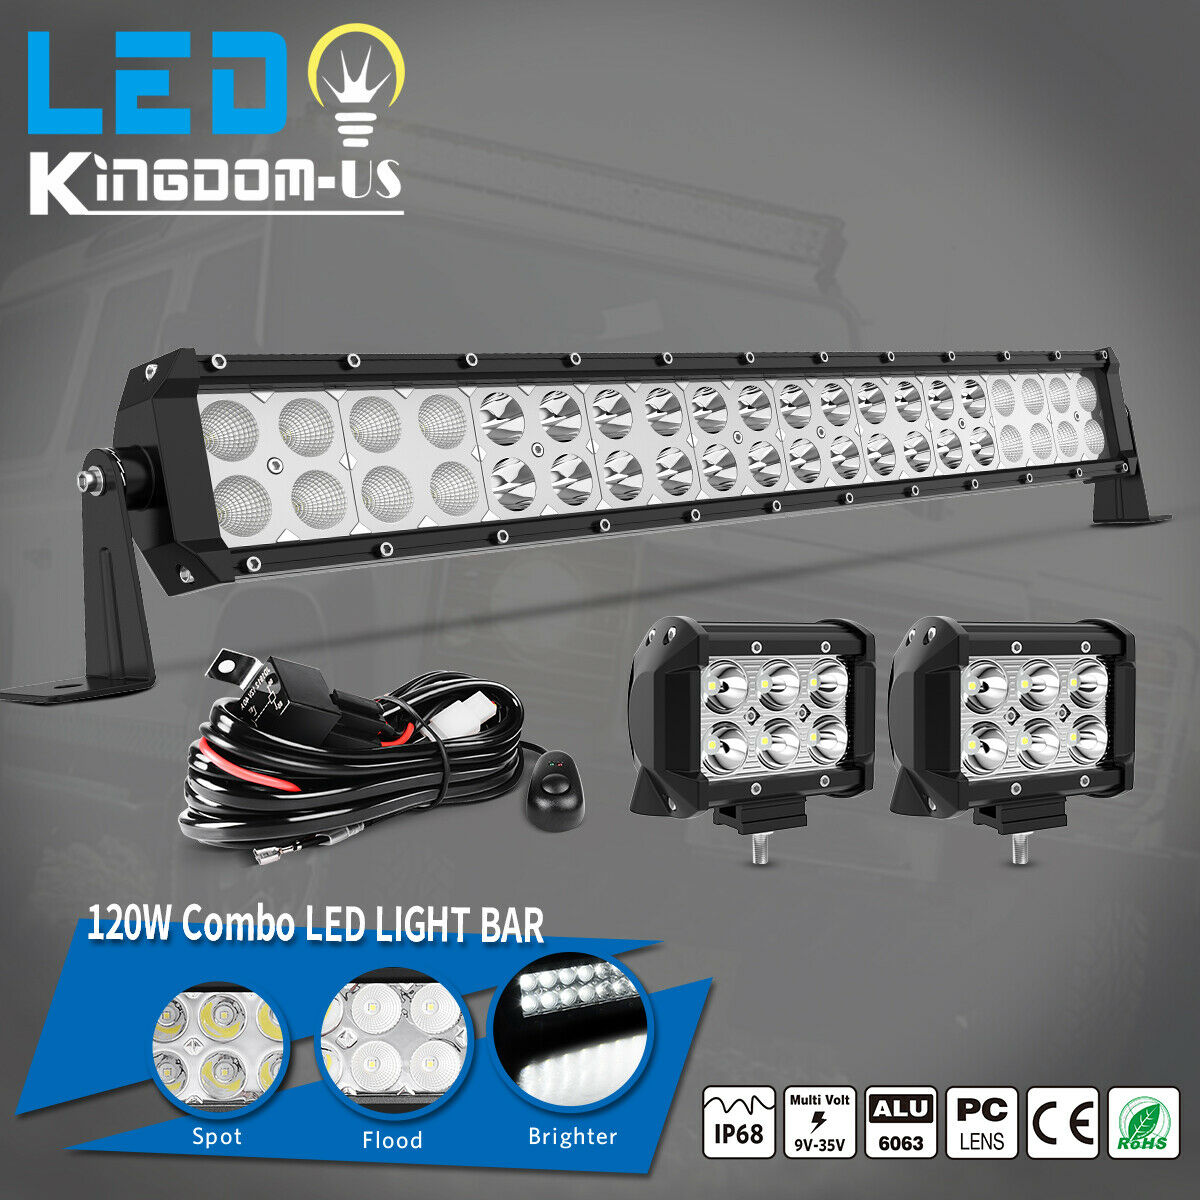 24 Led Light Bar Wiring Harness Electrical Diagrams Diagram Amazoncom Mictuning 120w Spot Flood Combo Work Boat Ute Truck Atv 4wd Off Road